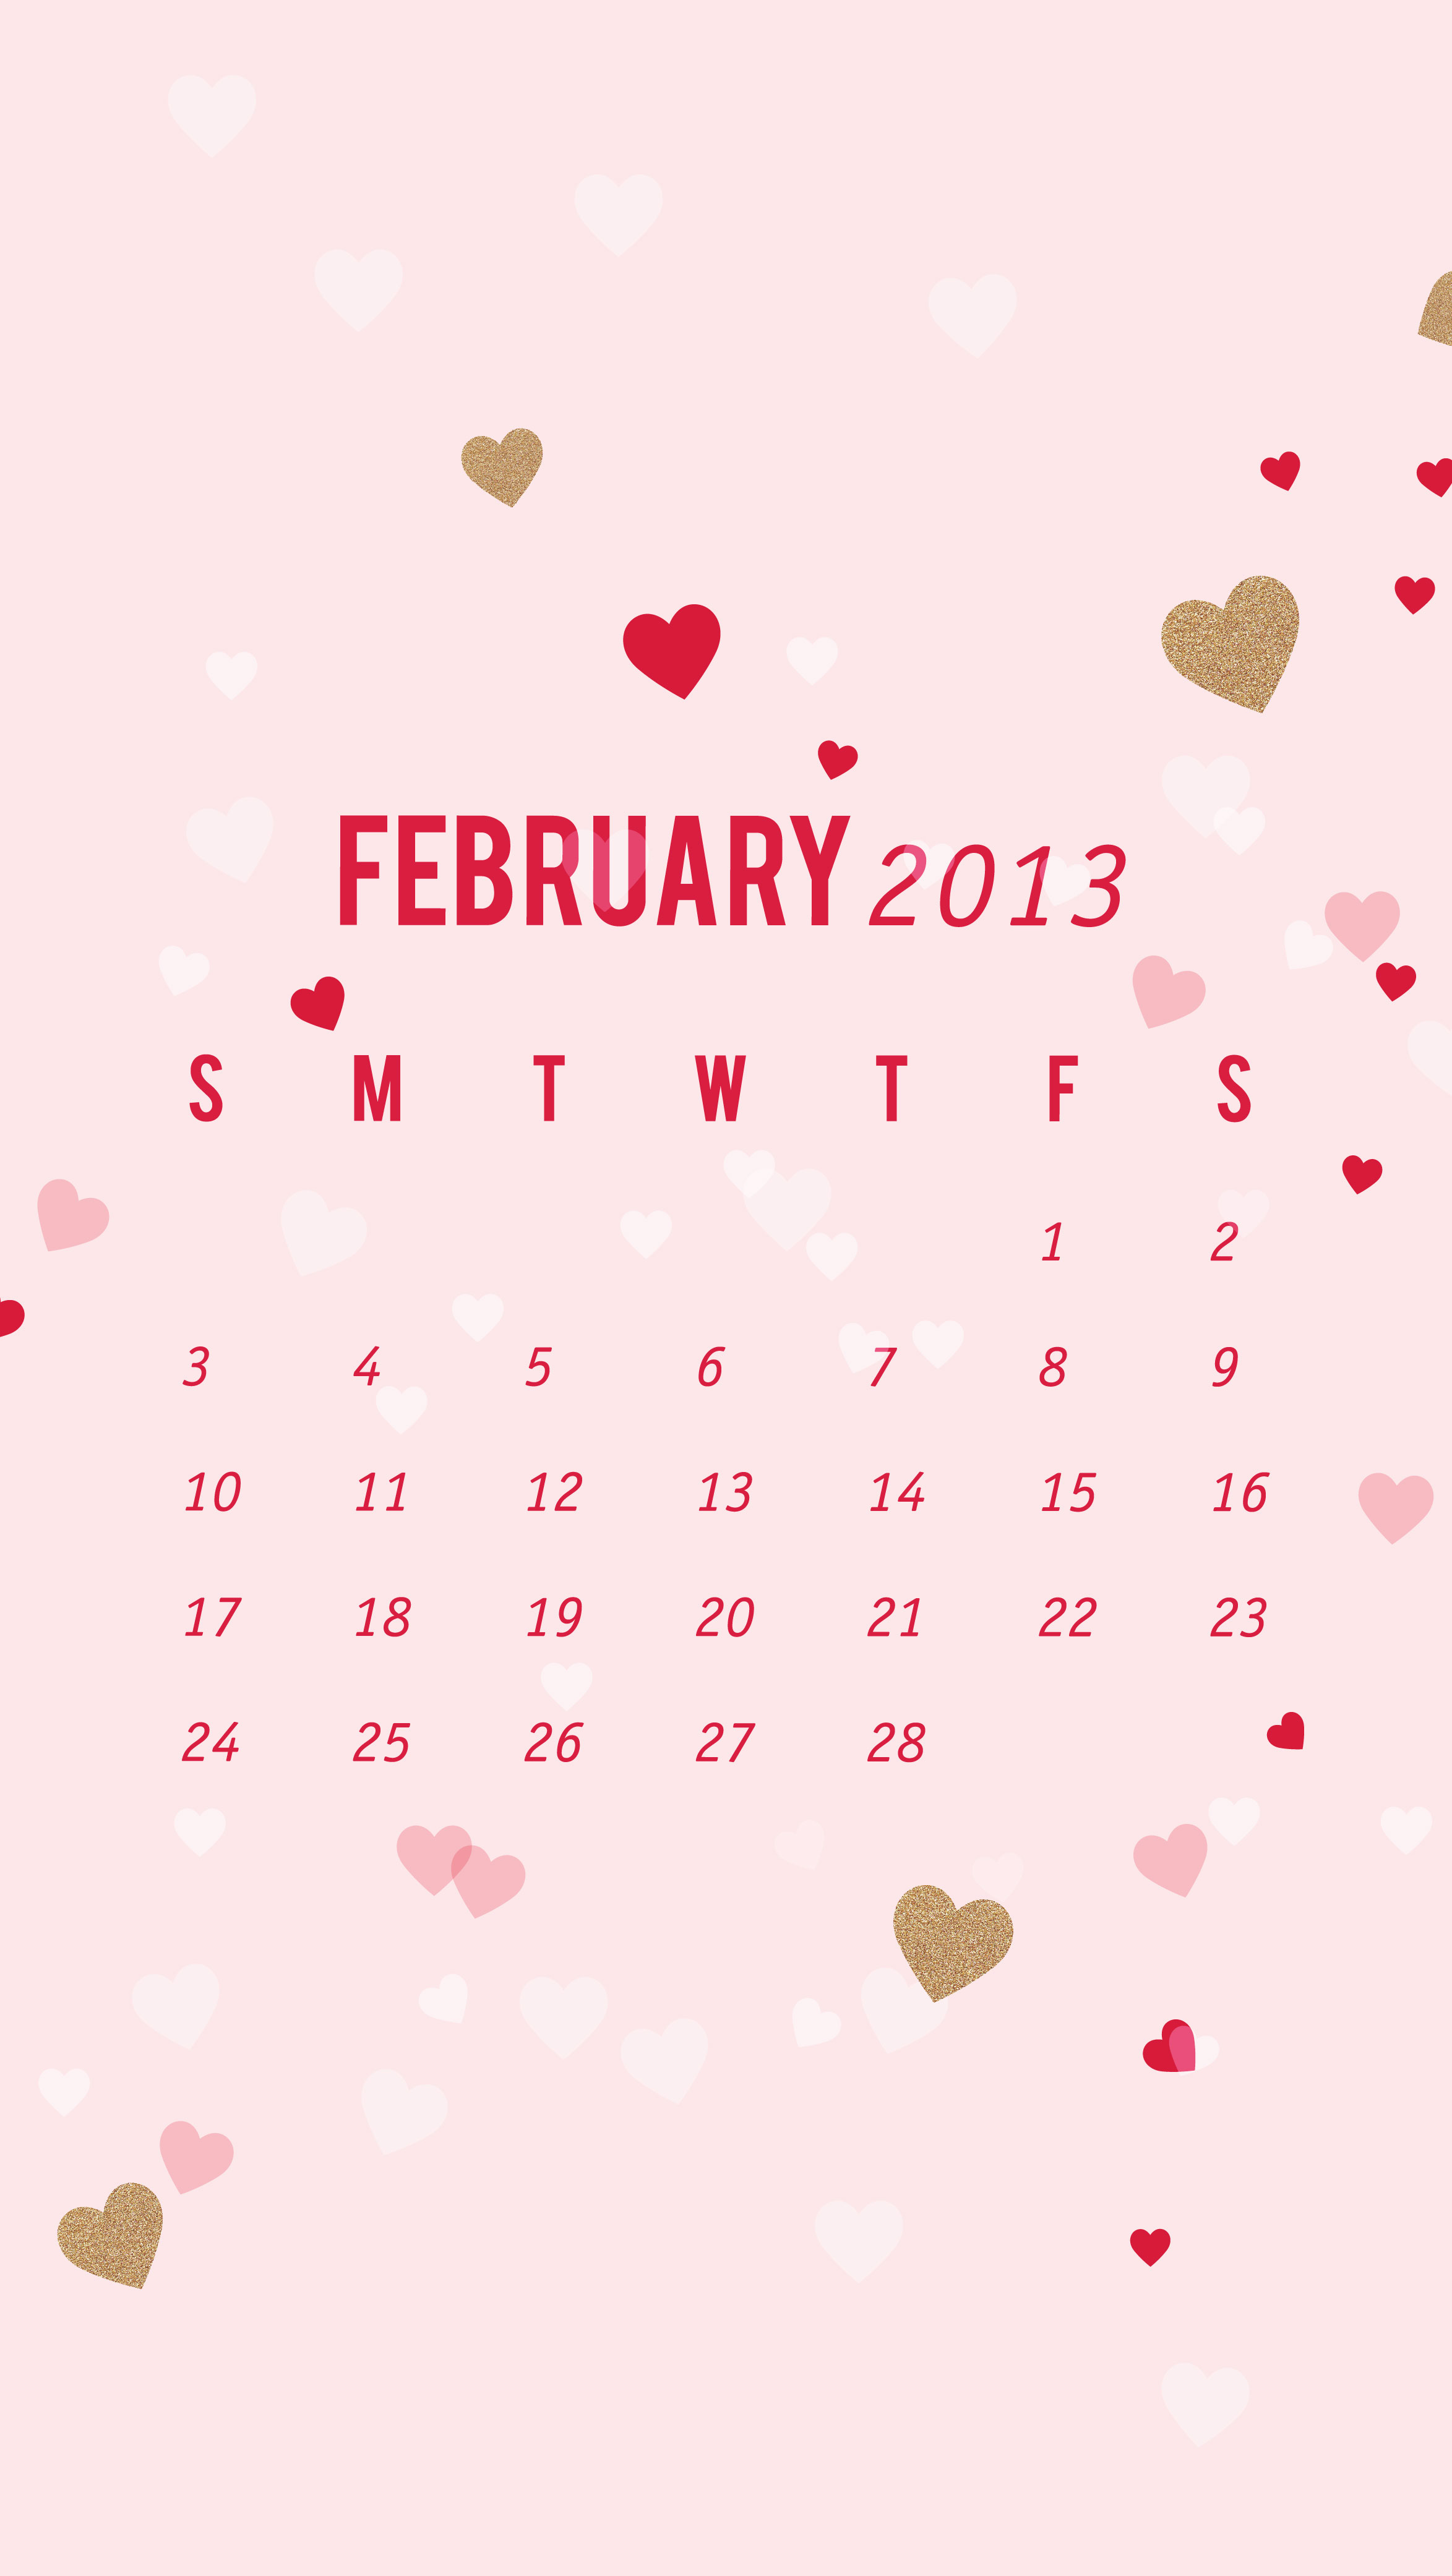 February Calendar Wallpaper Phone : February calendar wallpaper sarah hearts